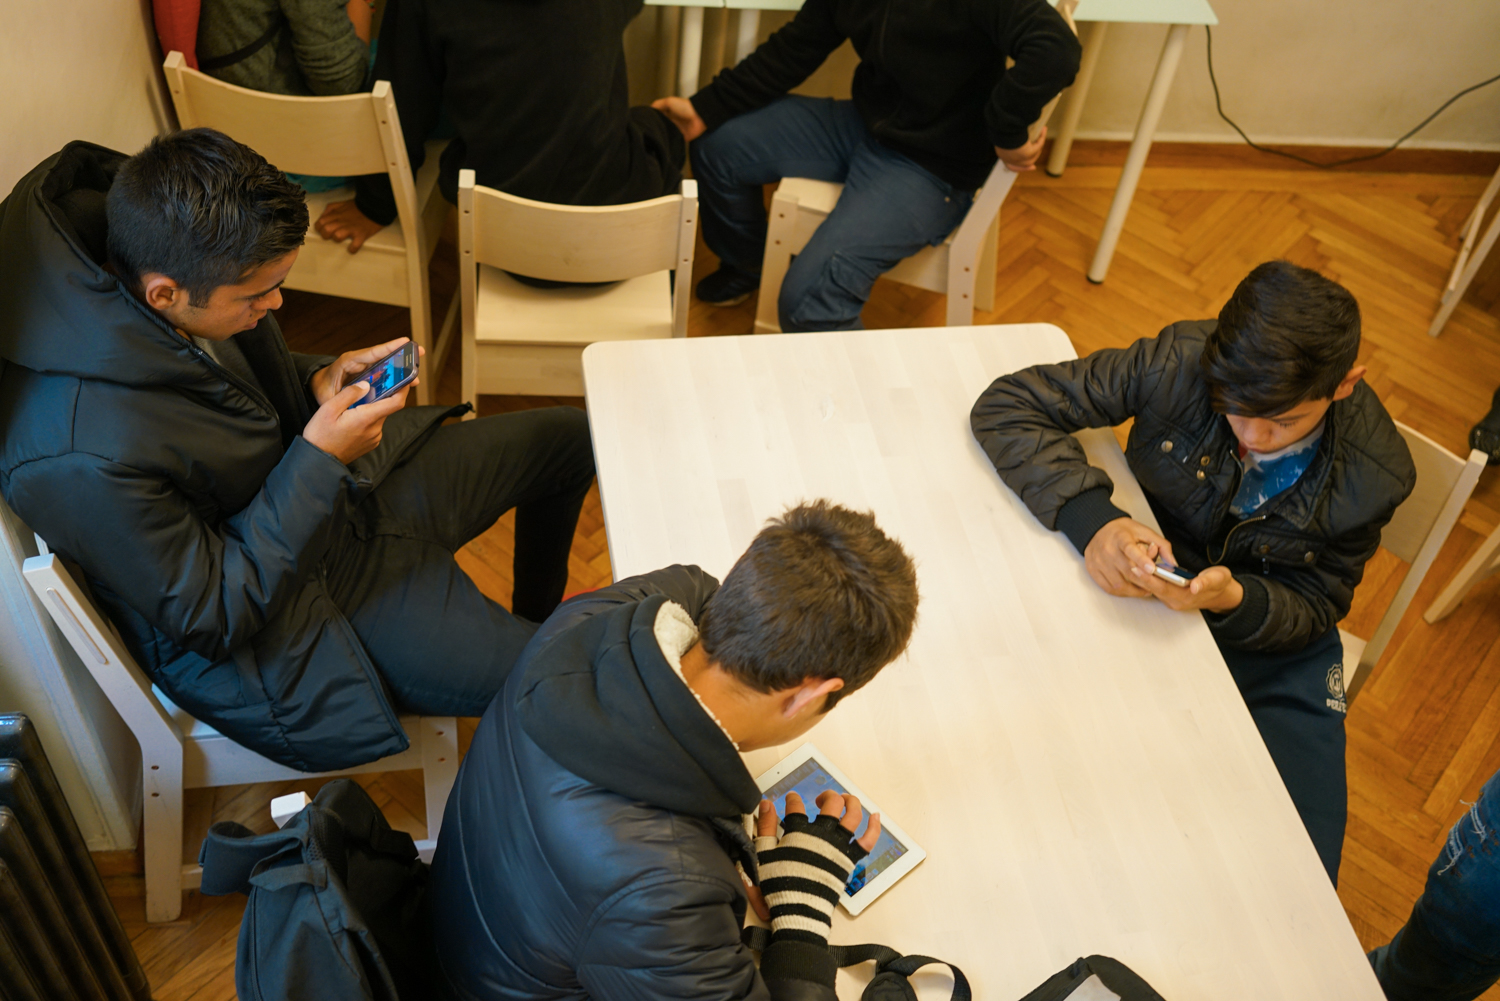 The boys play games on their phones in the dining room of Faros shelter for unaccompanied minors. Photo: Talitha Brauer